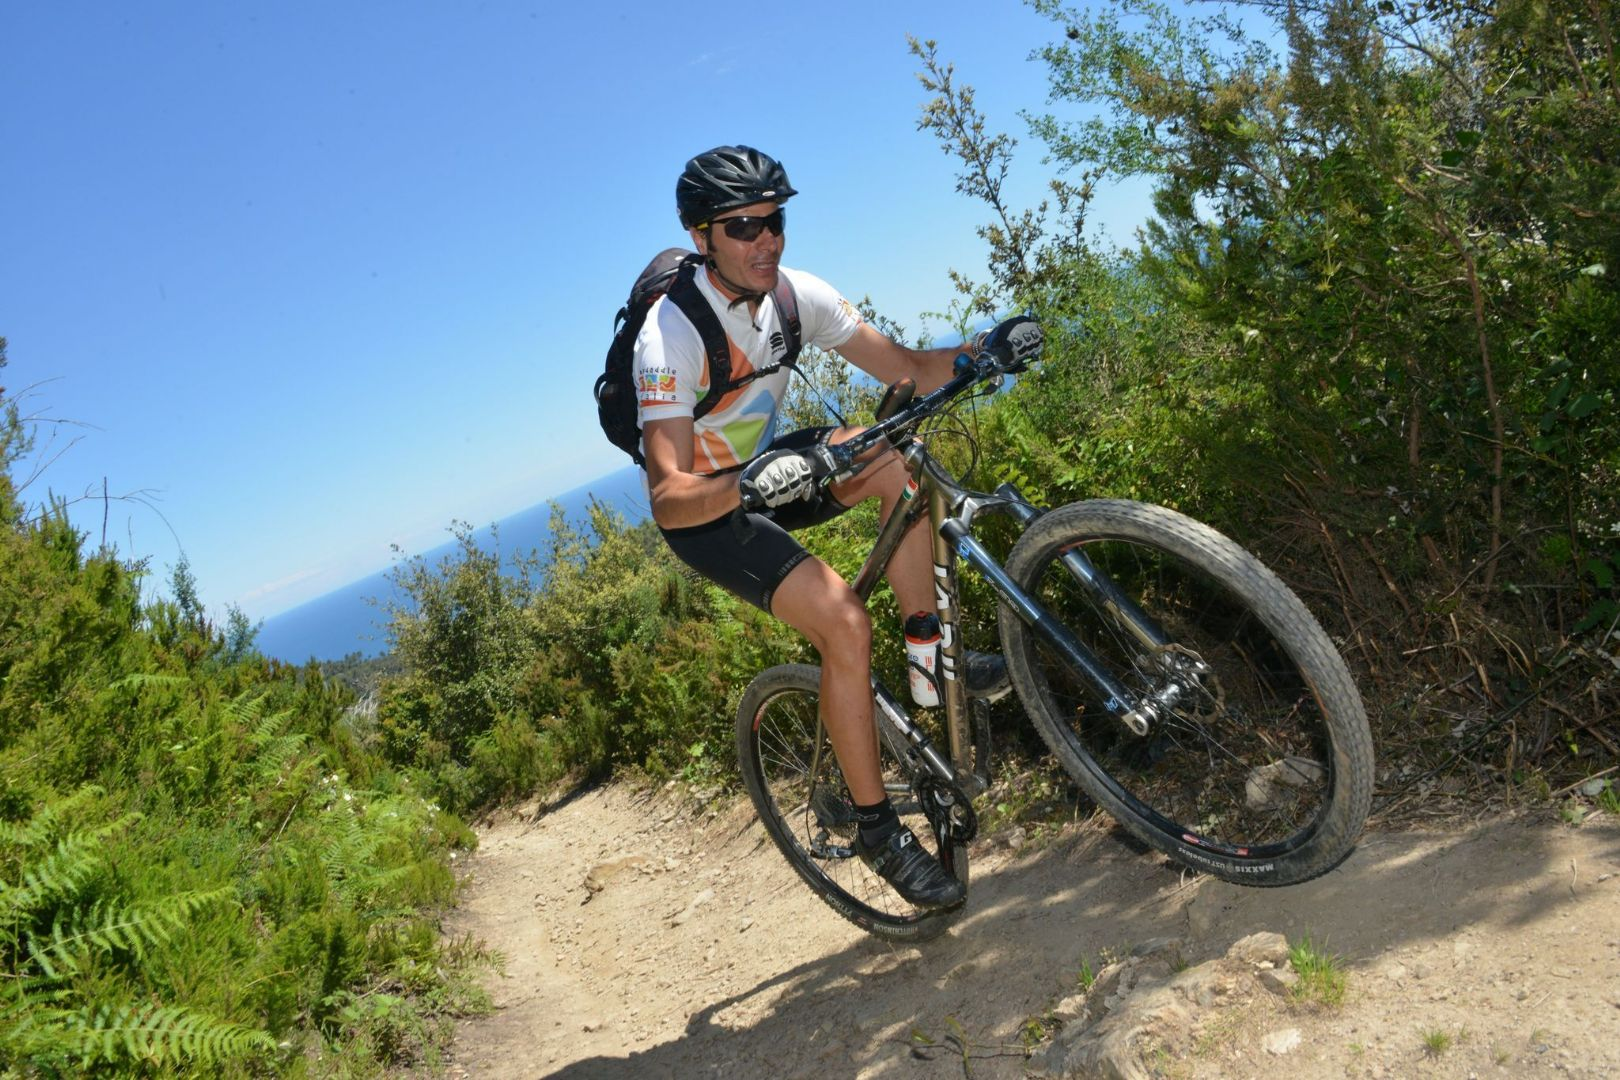 ojUjw5A2rWCuJUeagWYrQrsEcGxYILyceplN3rSBork.jpg - Italy - Liguria - Riding the Riviera - Guided Mountain Bike Holiday - Italia Mountain Biking